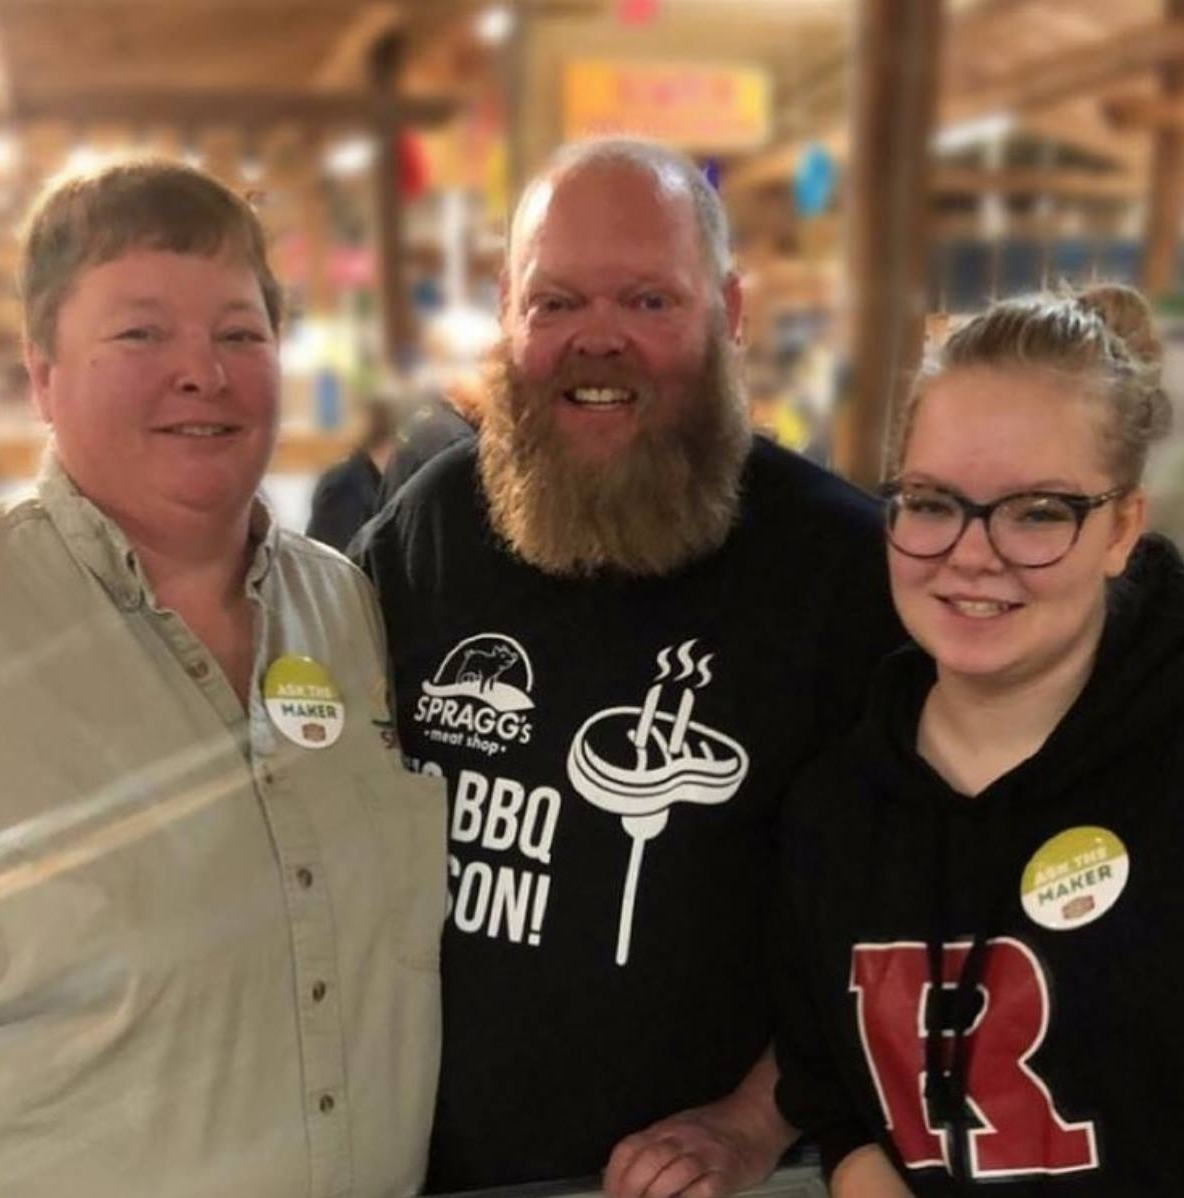 ABout us - Bonnie, Greg and Ruth Spragg work hard to produce the best pork for Albertans, from the moment the pigs are born, to the day the pork chops are cut, bacon is smoked, and the roast is marinated. From farm to table, our focus is on quality and taste.